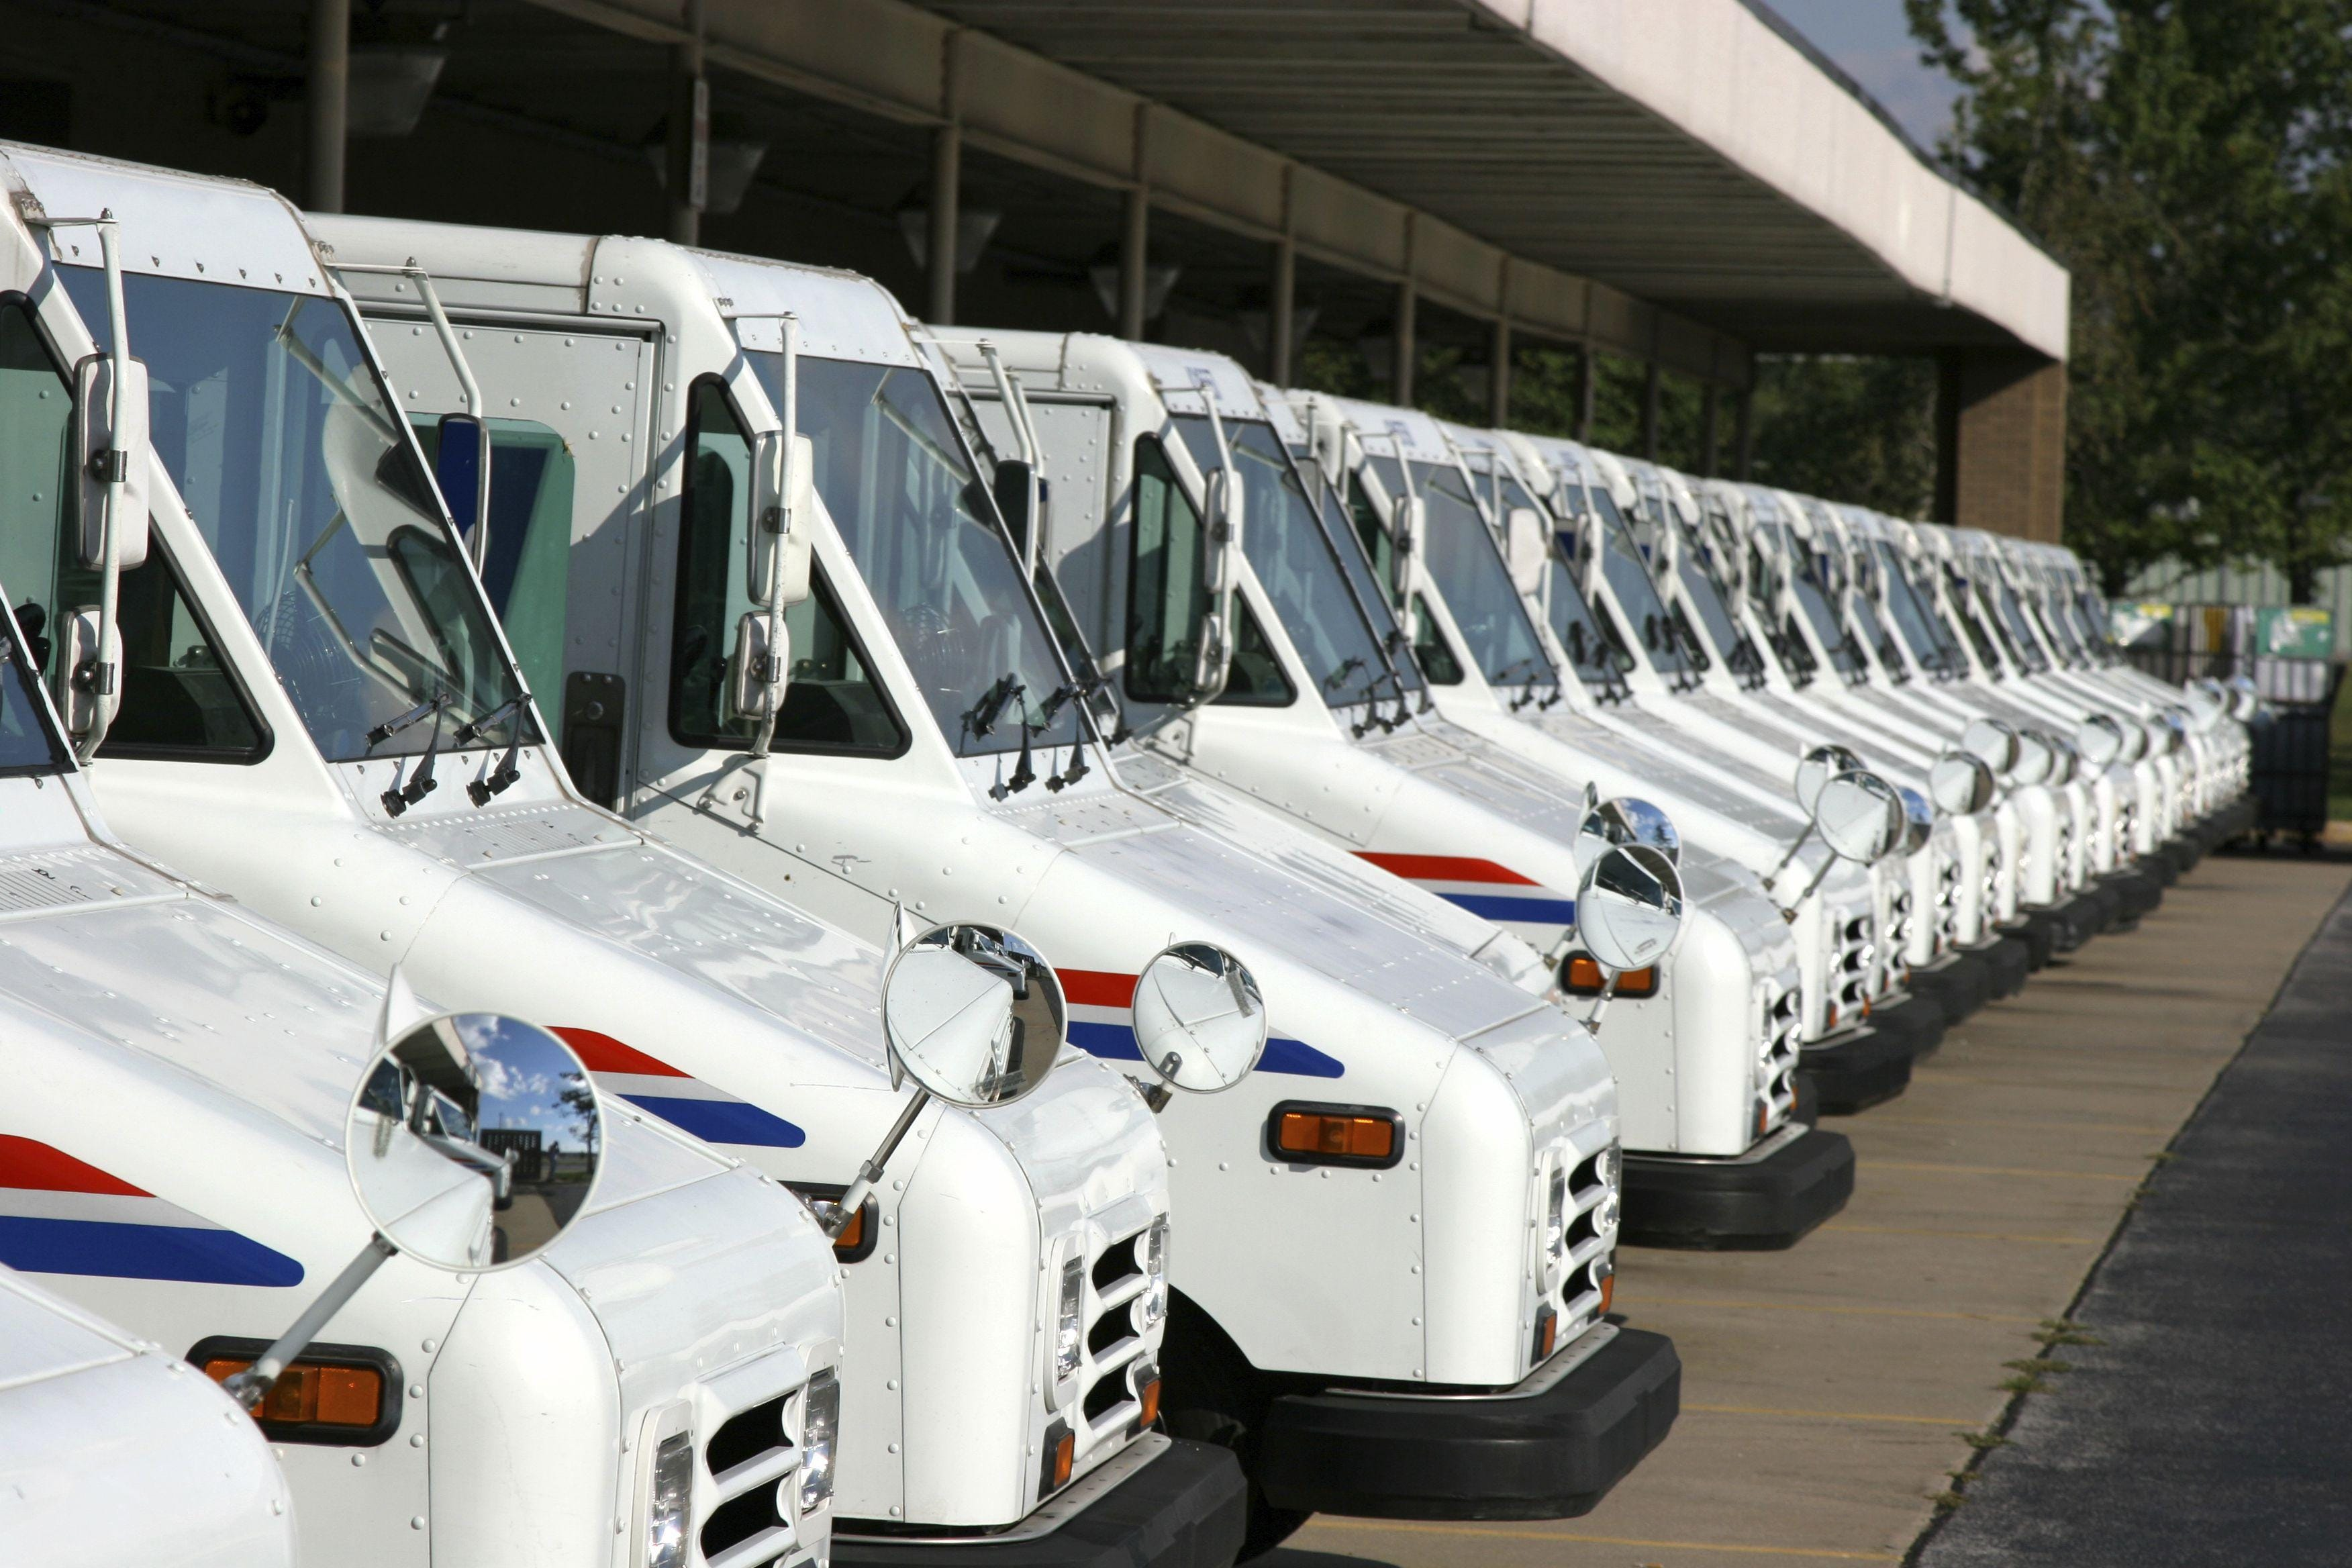 Michigan mail carrier dies after being pinned by postal truck   Detroit Free Press